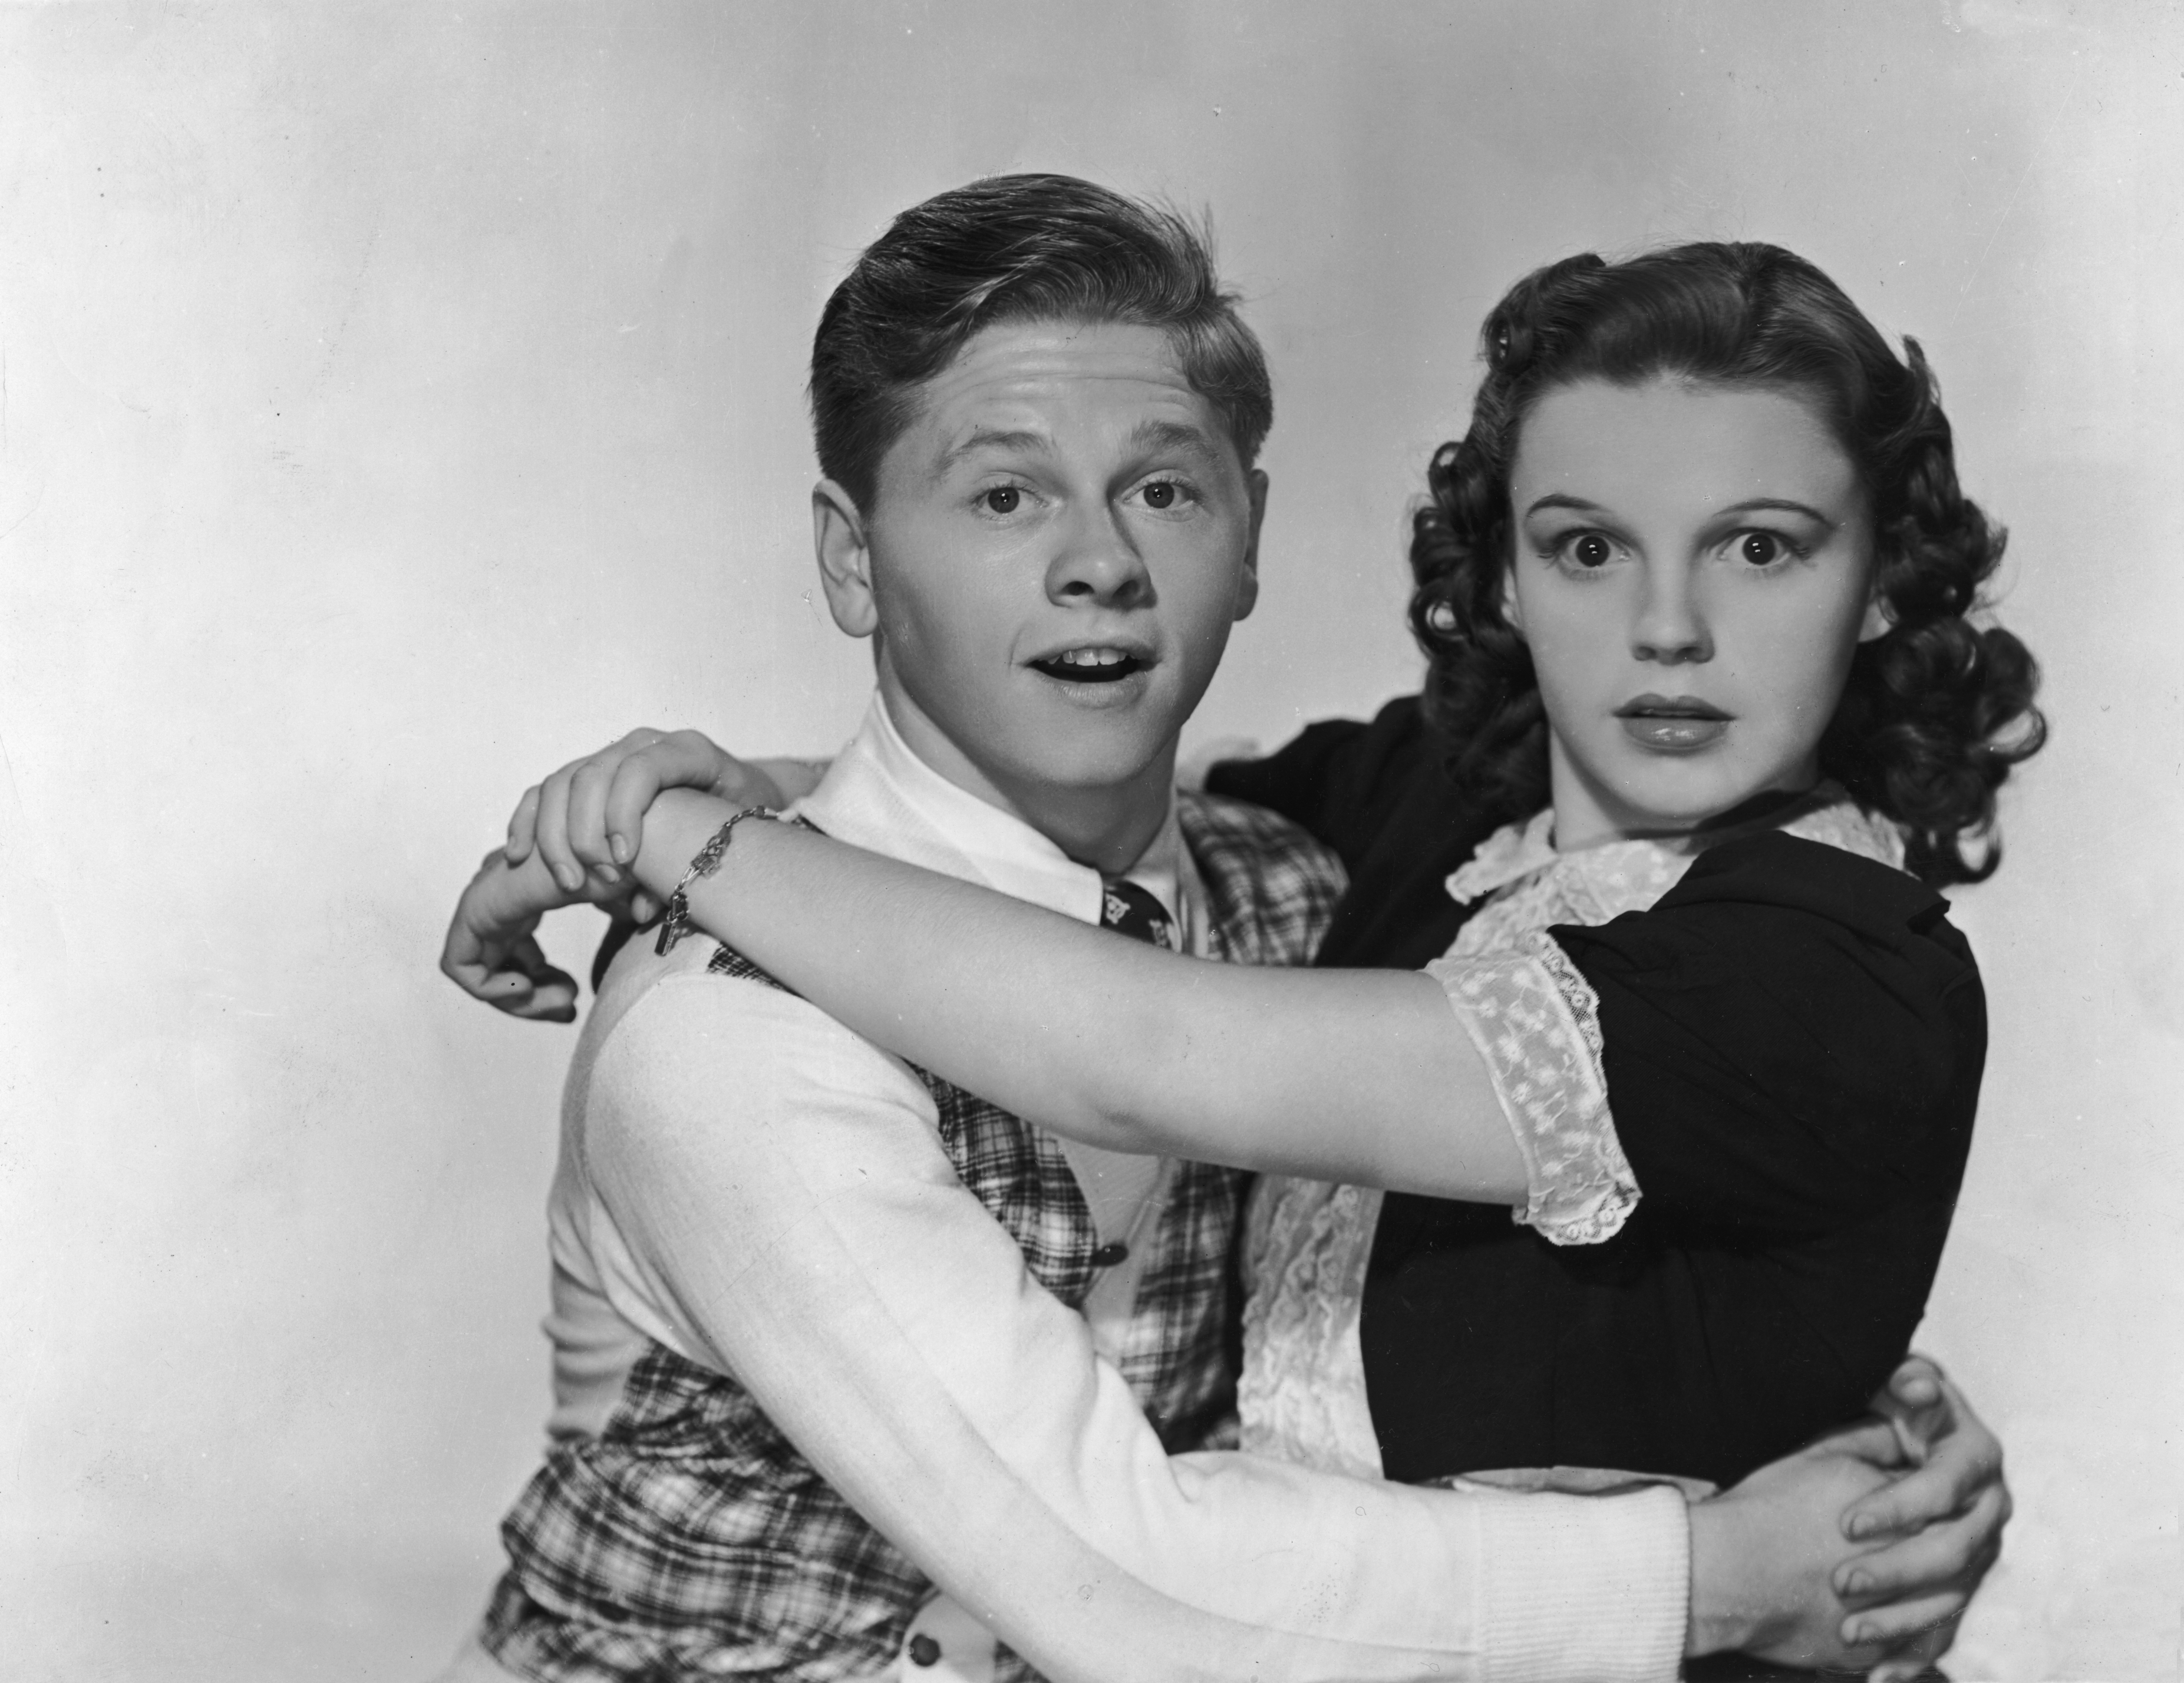 Mickey Rooney and Judy Garland in a promotional portrait for director George B. Seitz's film, 'Love Finds Andy Hardy,' circa 1938